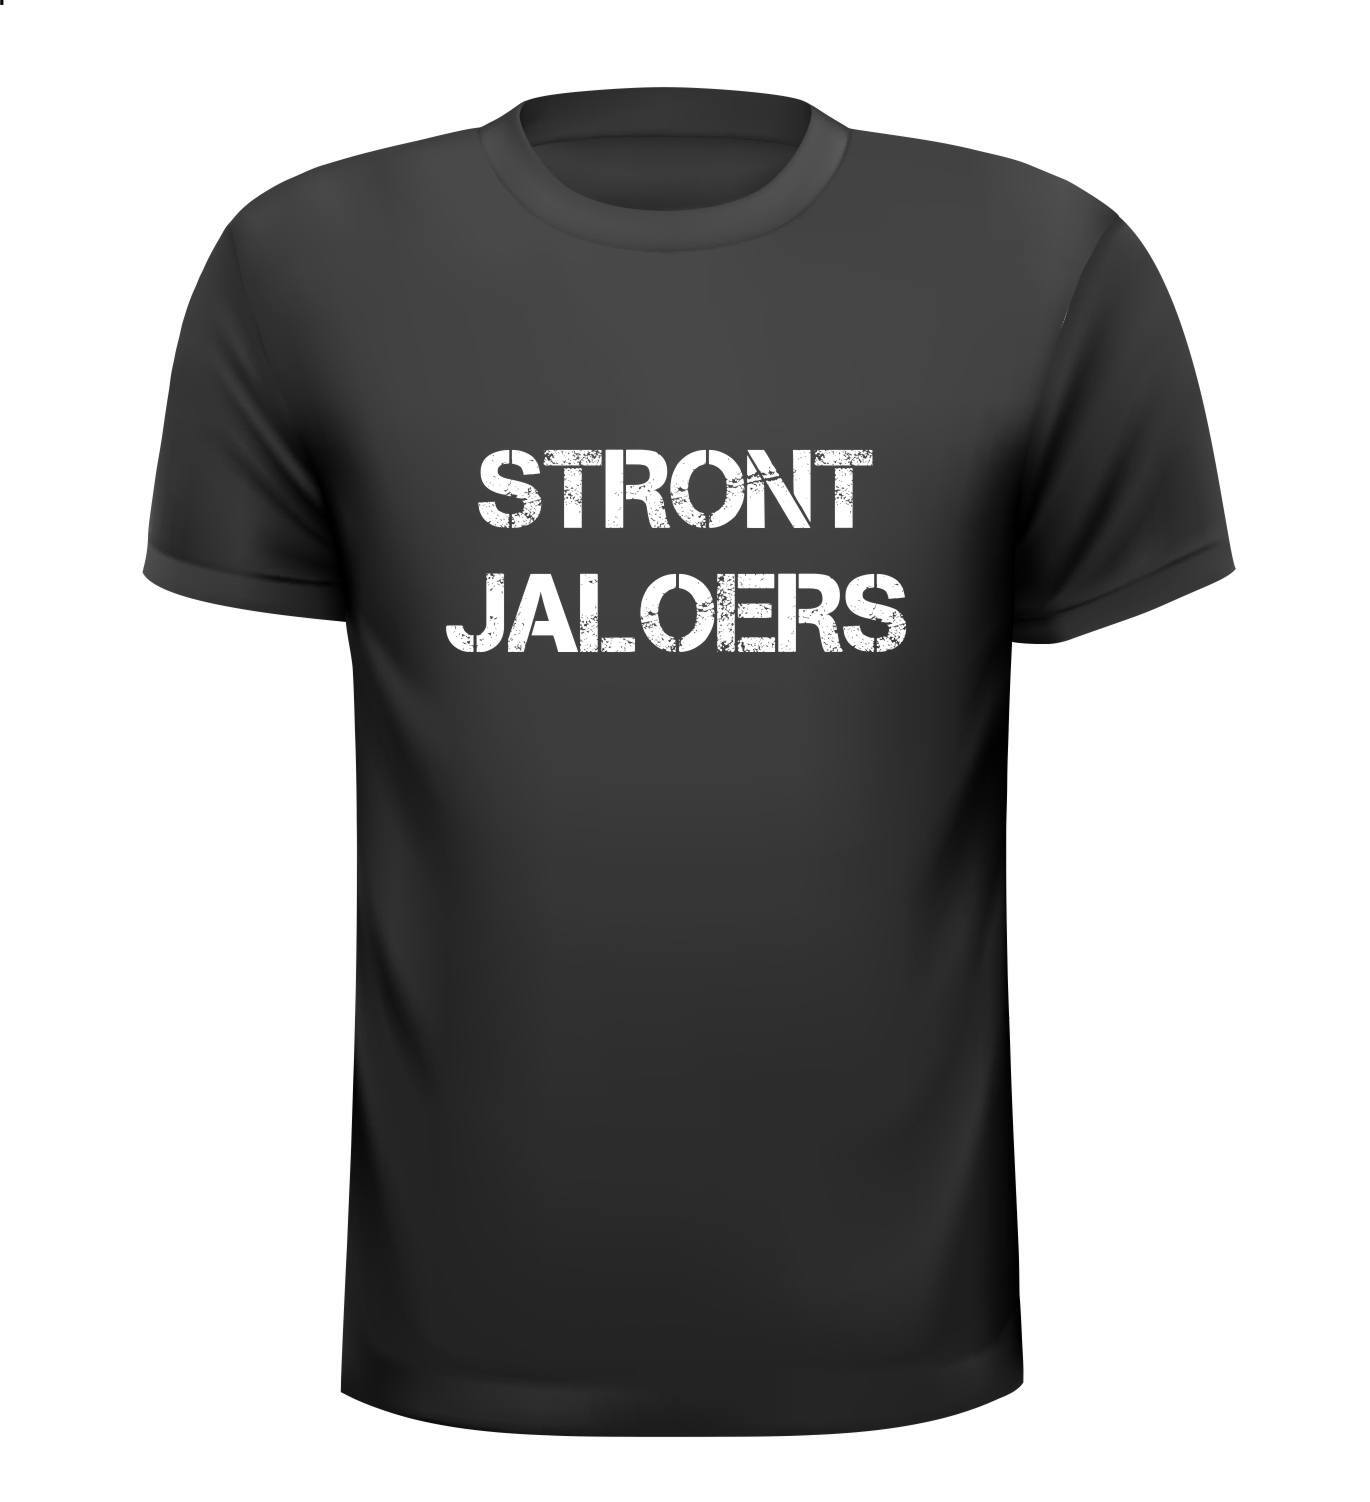 Stront jaloers shirt